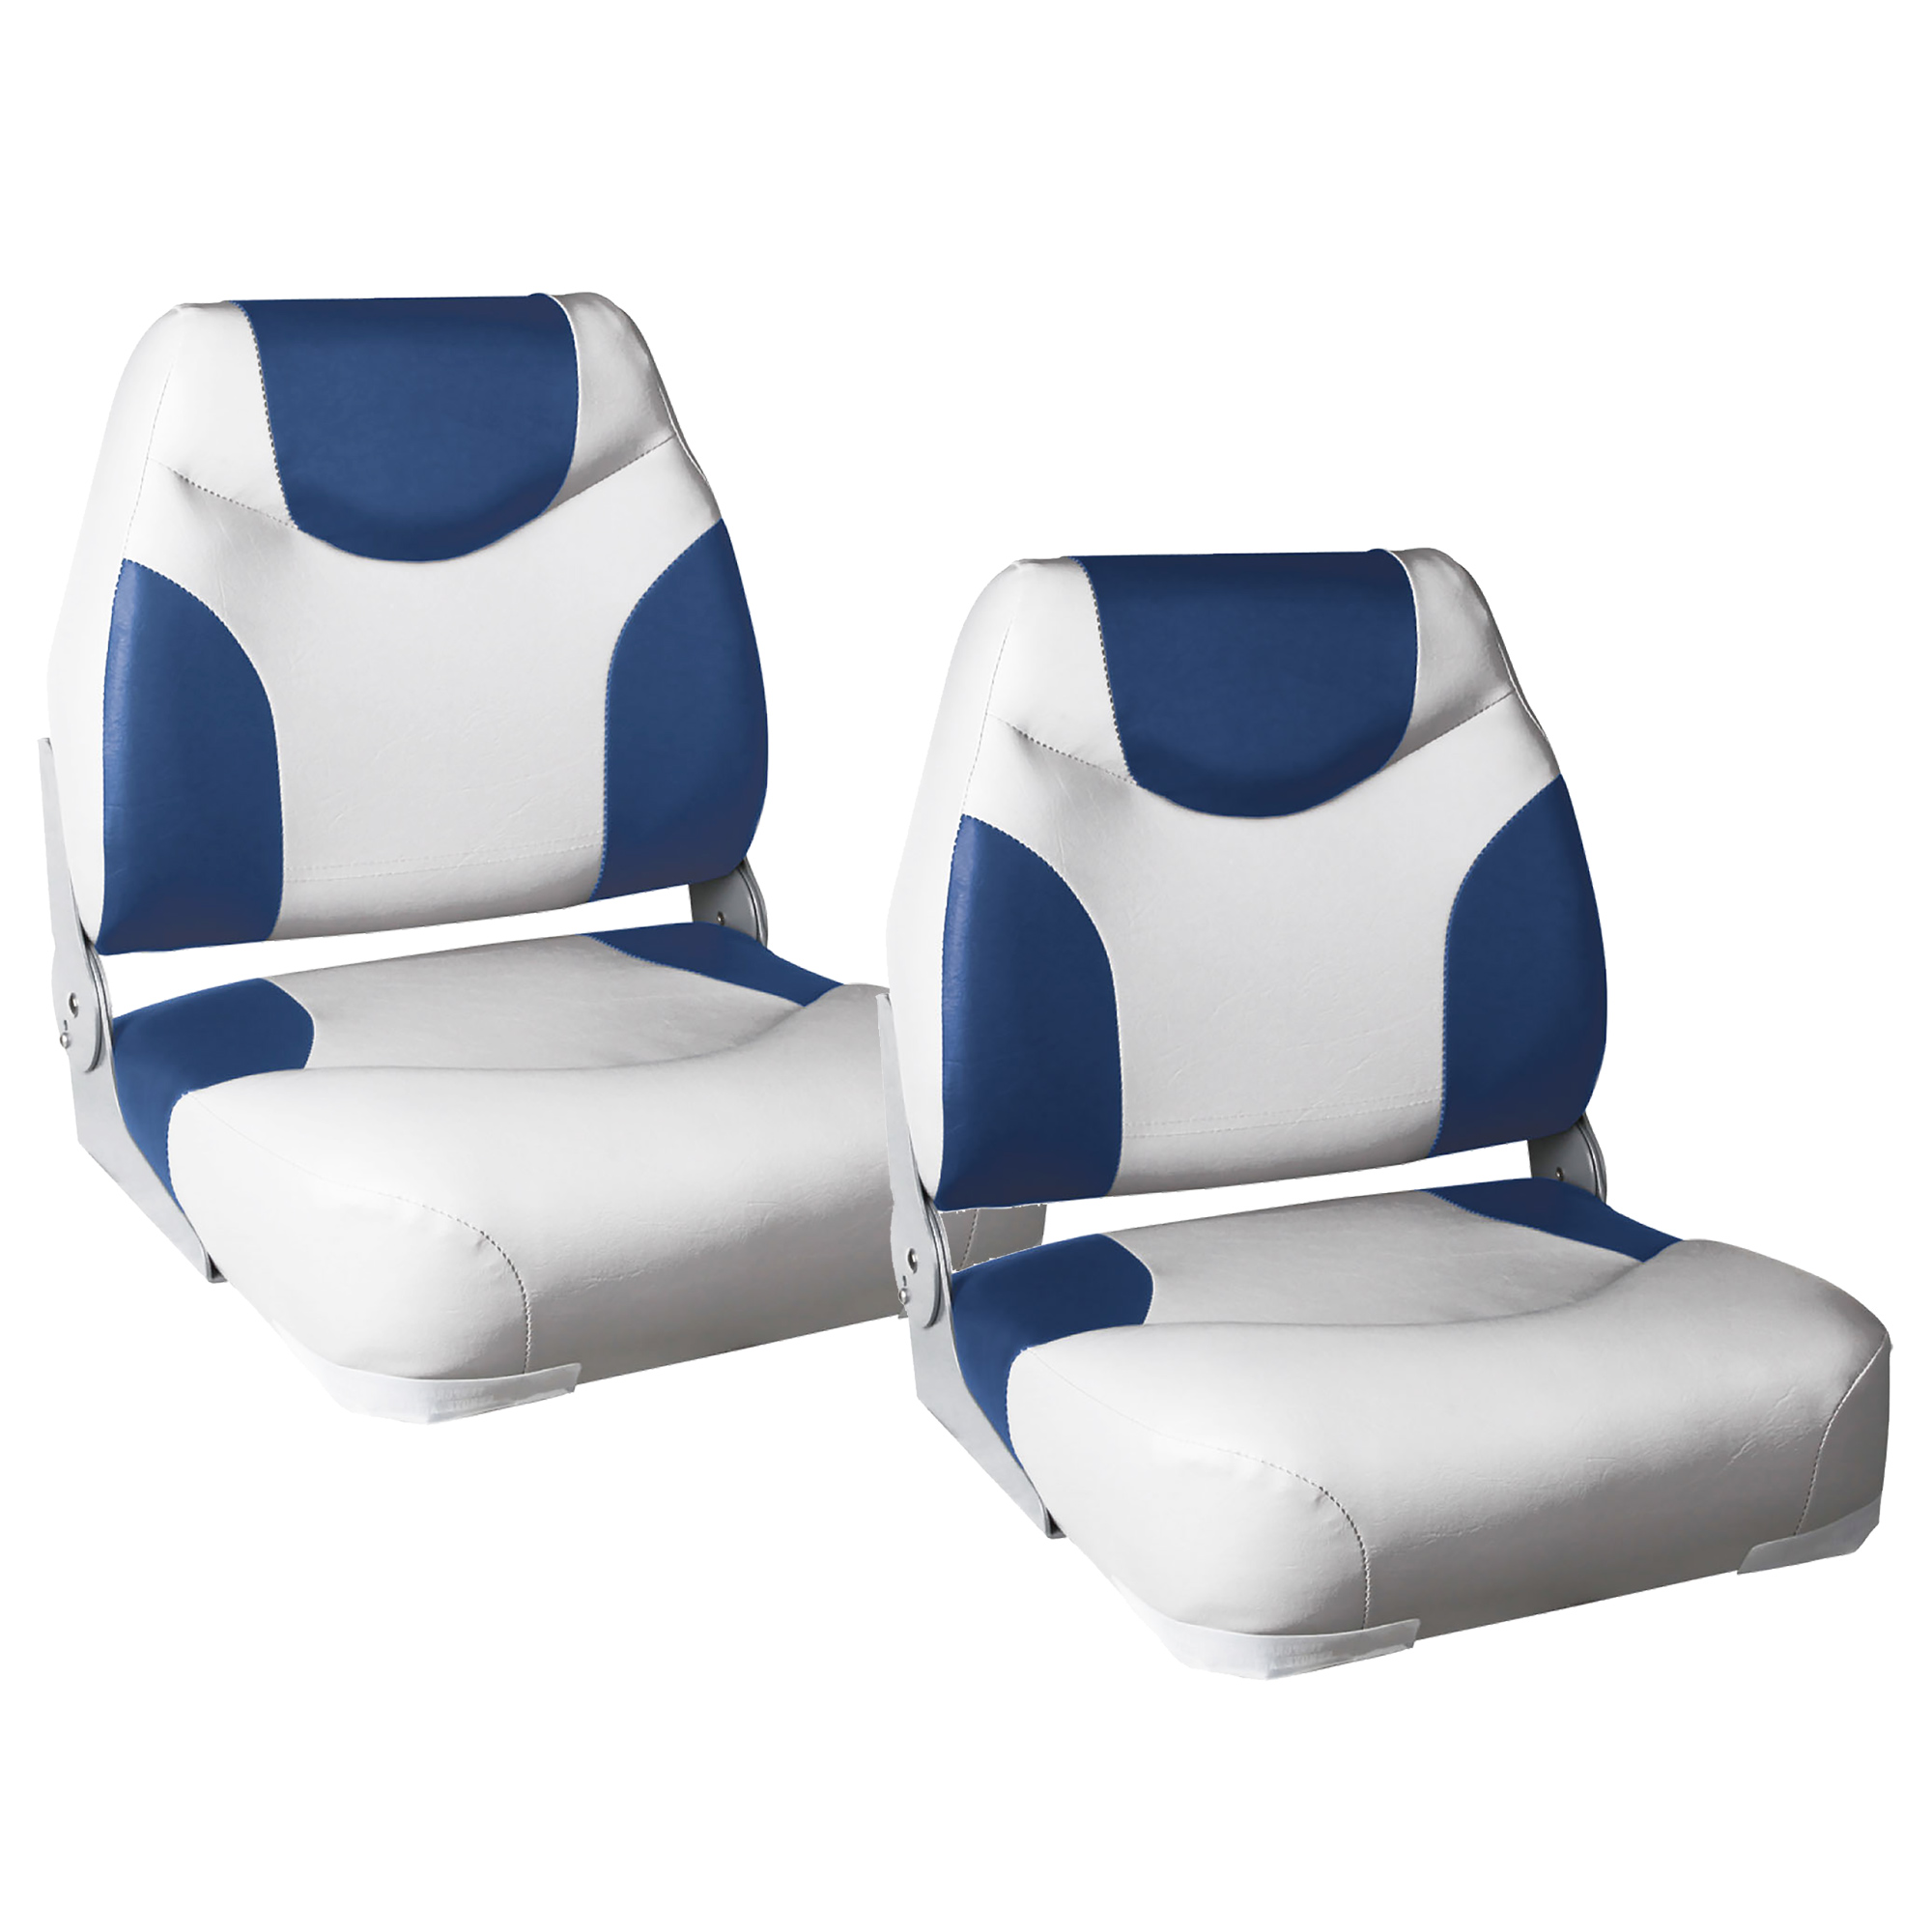 Boat Seat Stool : Boat seat quot exclusive blue white imitation leather